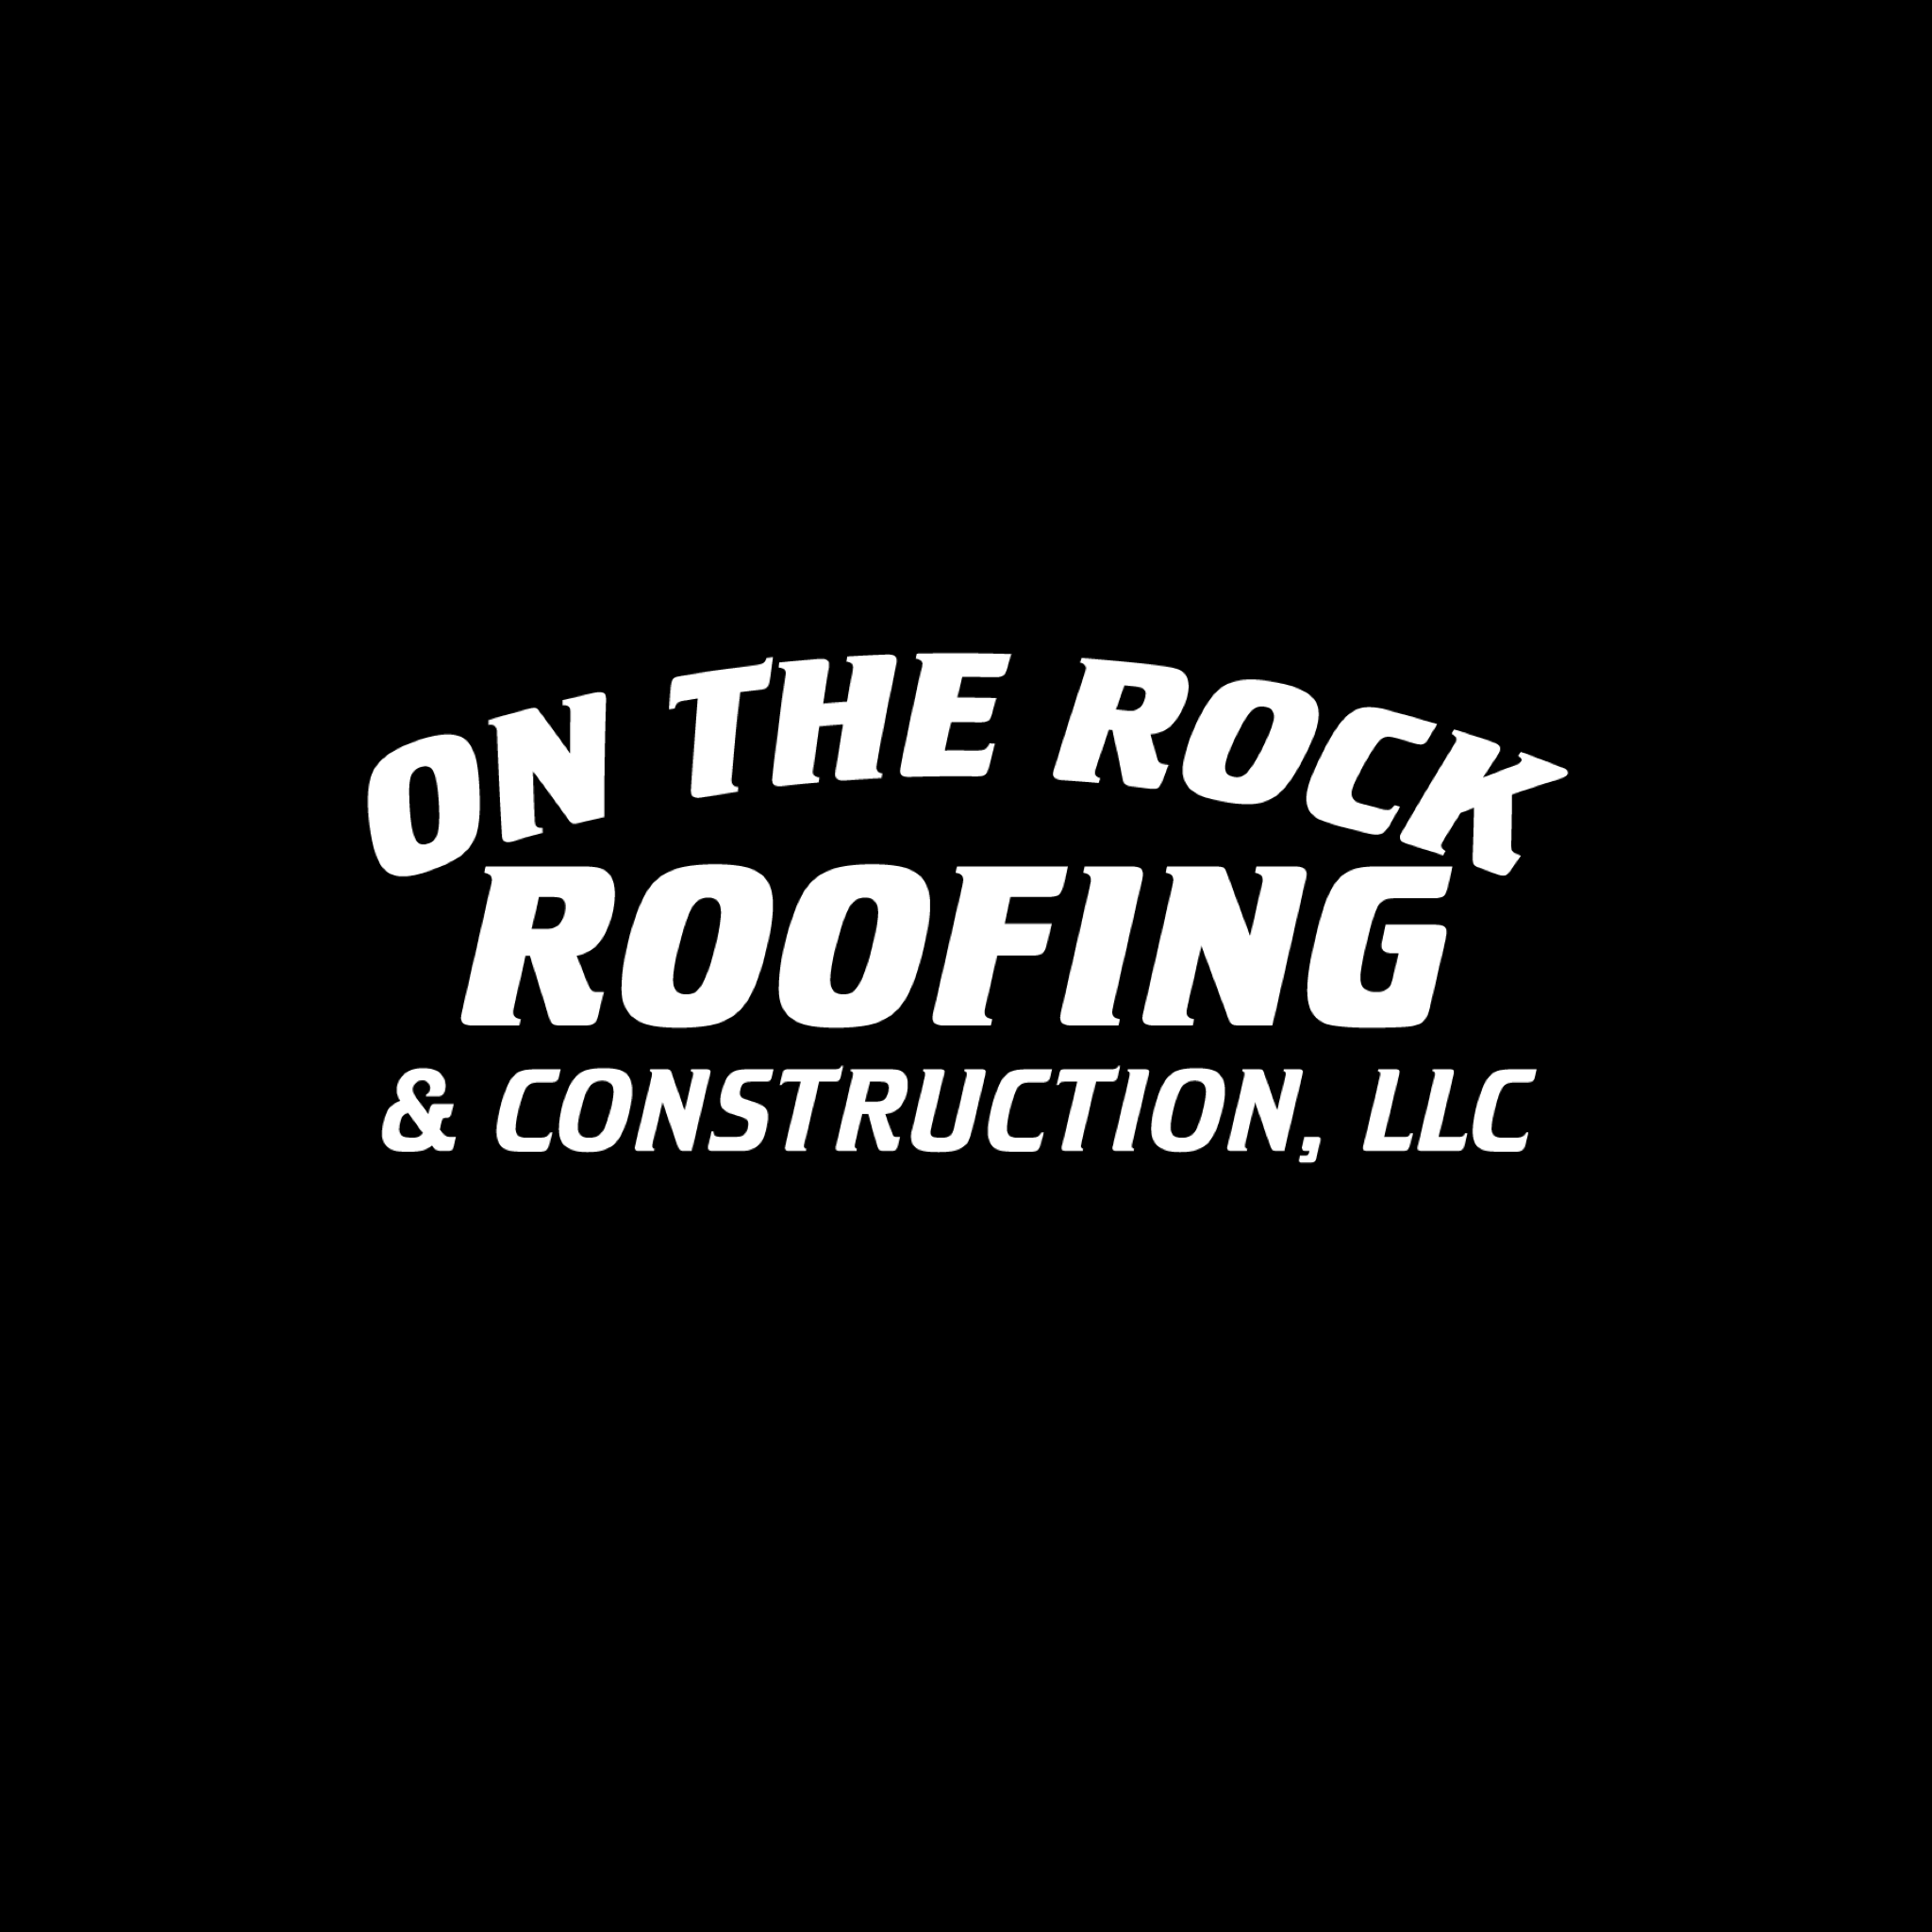 On The Rock Roofing image 0